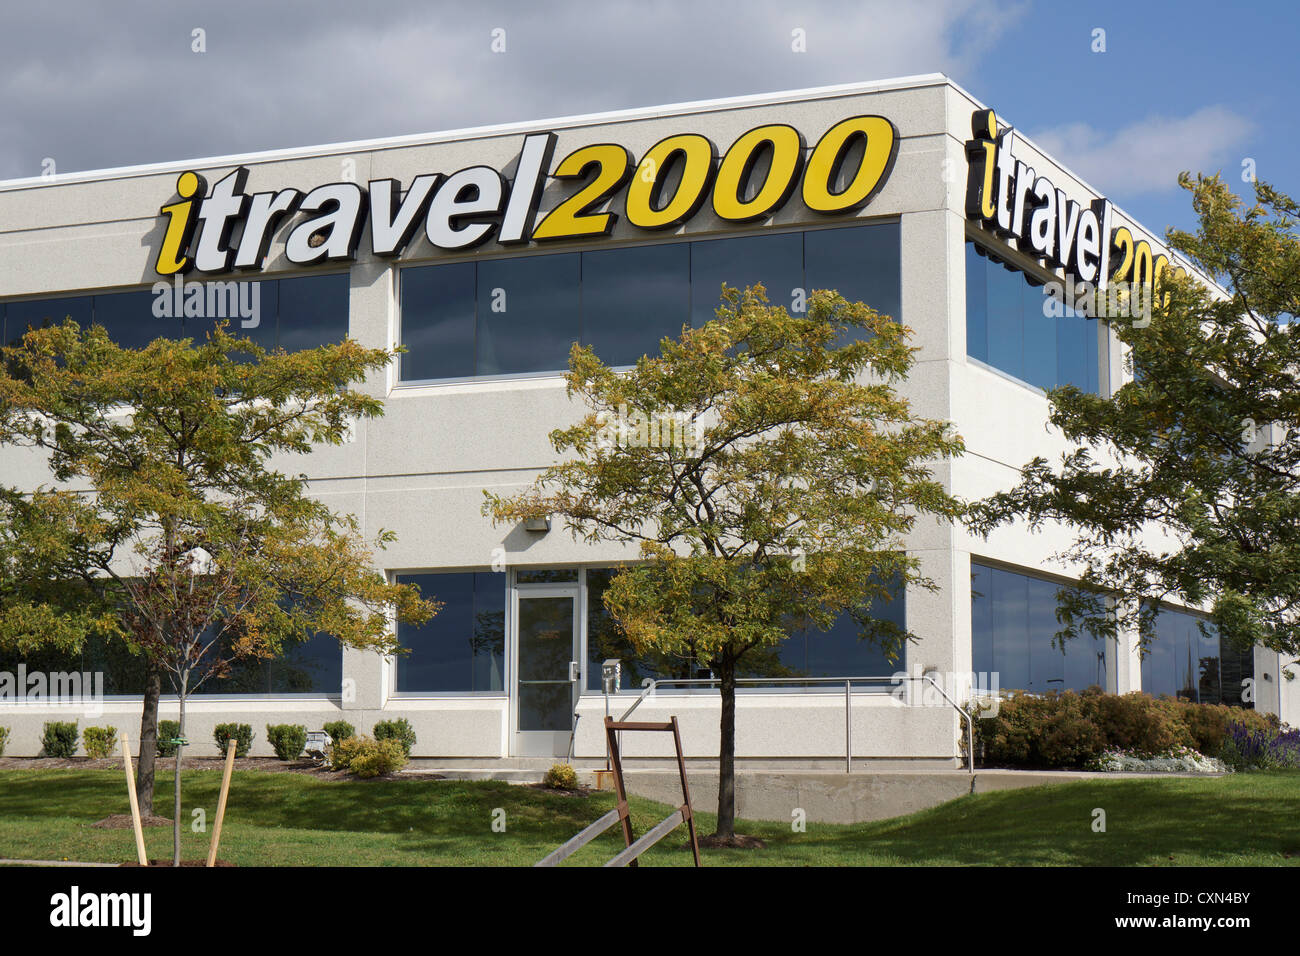 ITravel2000, agence de voyages l'emplacement des bureaux, Mississauga, Ontario, Canada Photo Stock